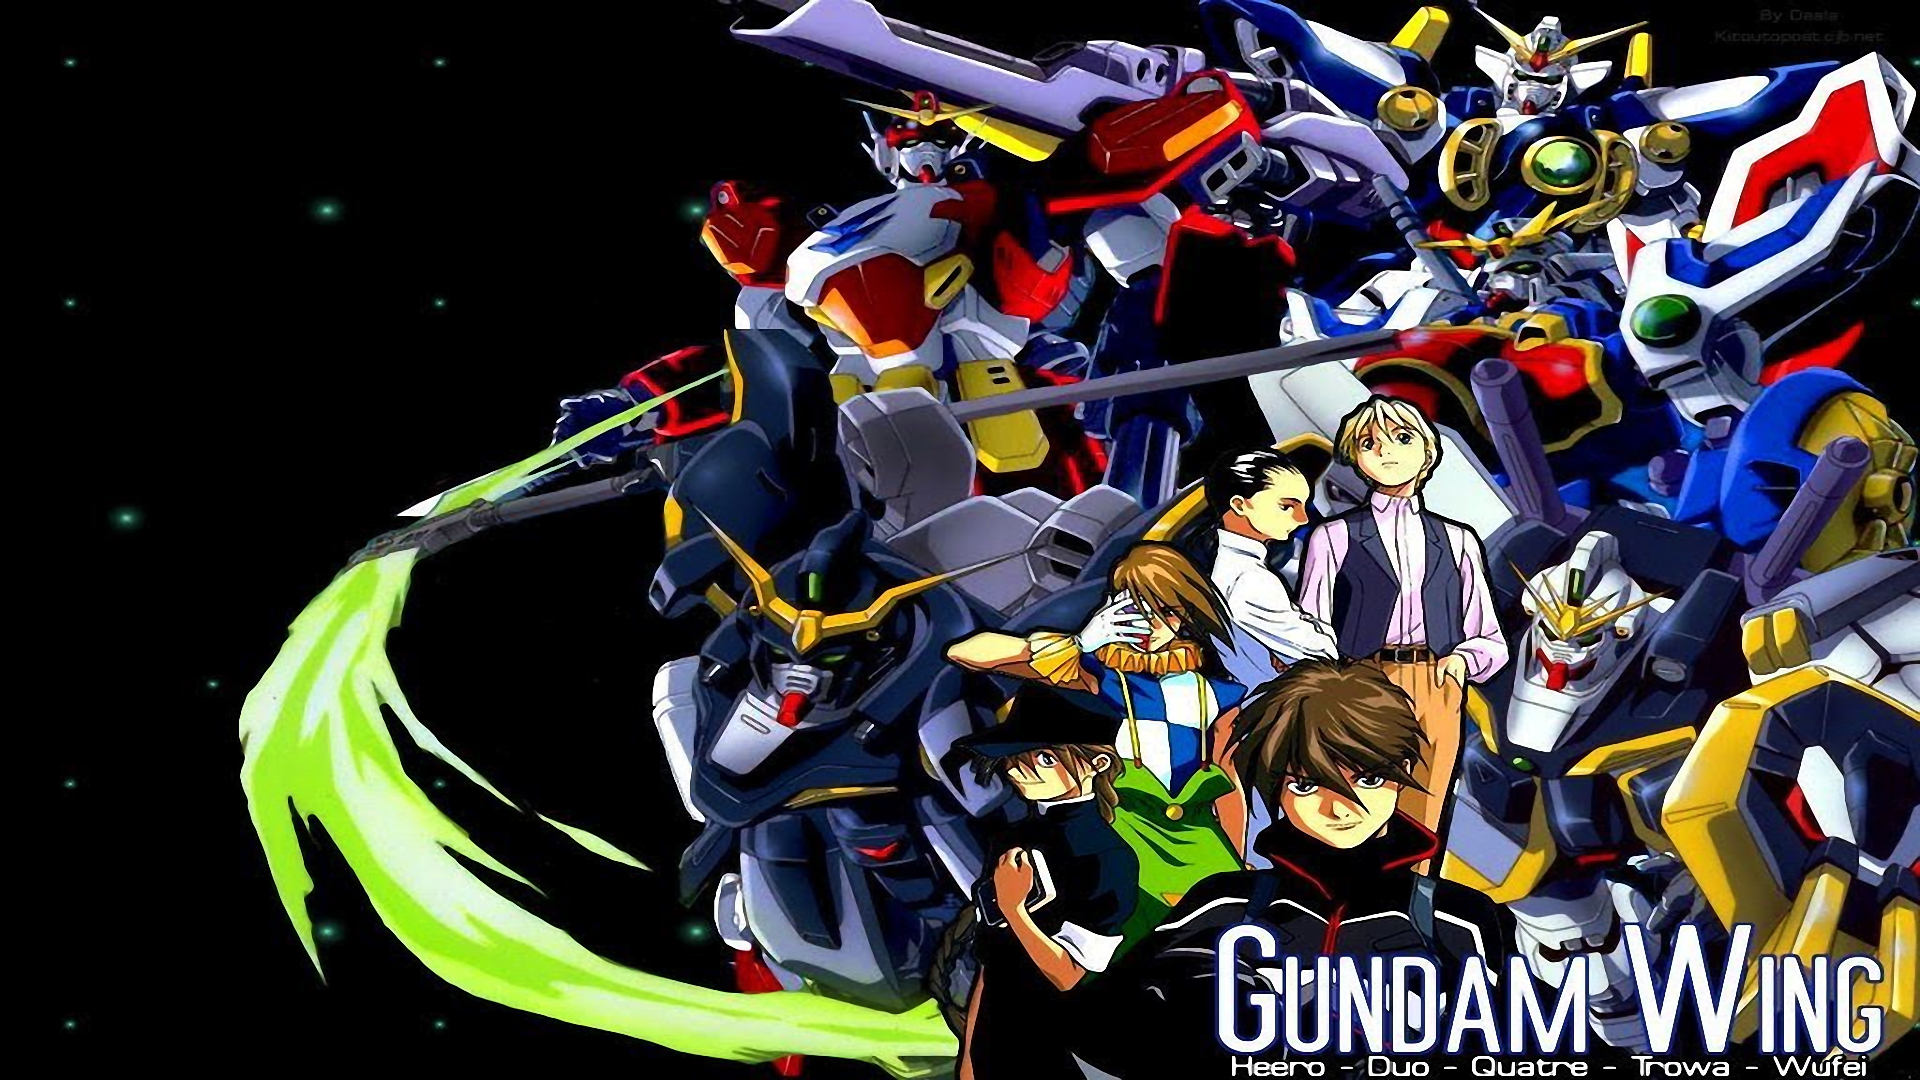 3 Gundam Wing: Endless Duel HD Wallpapers | Backgrounds